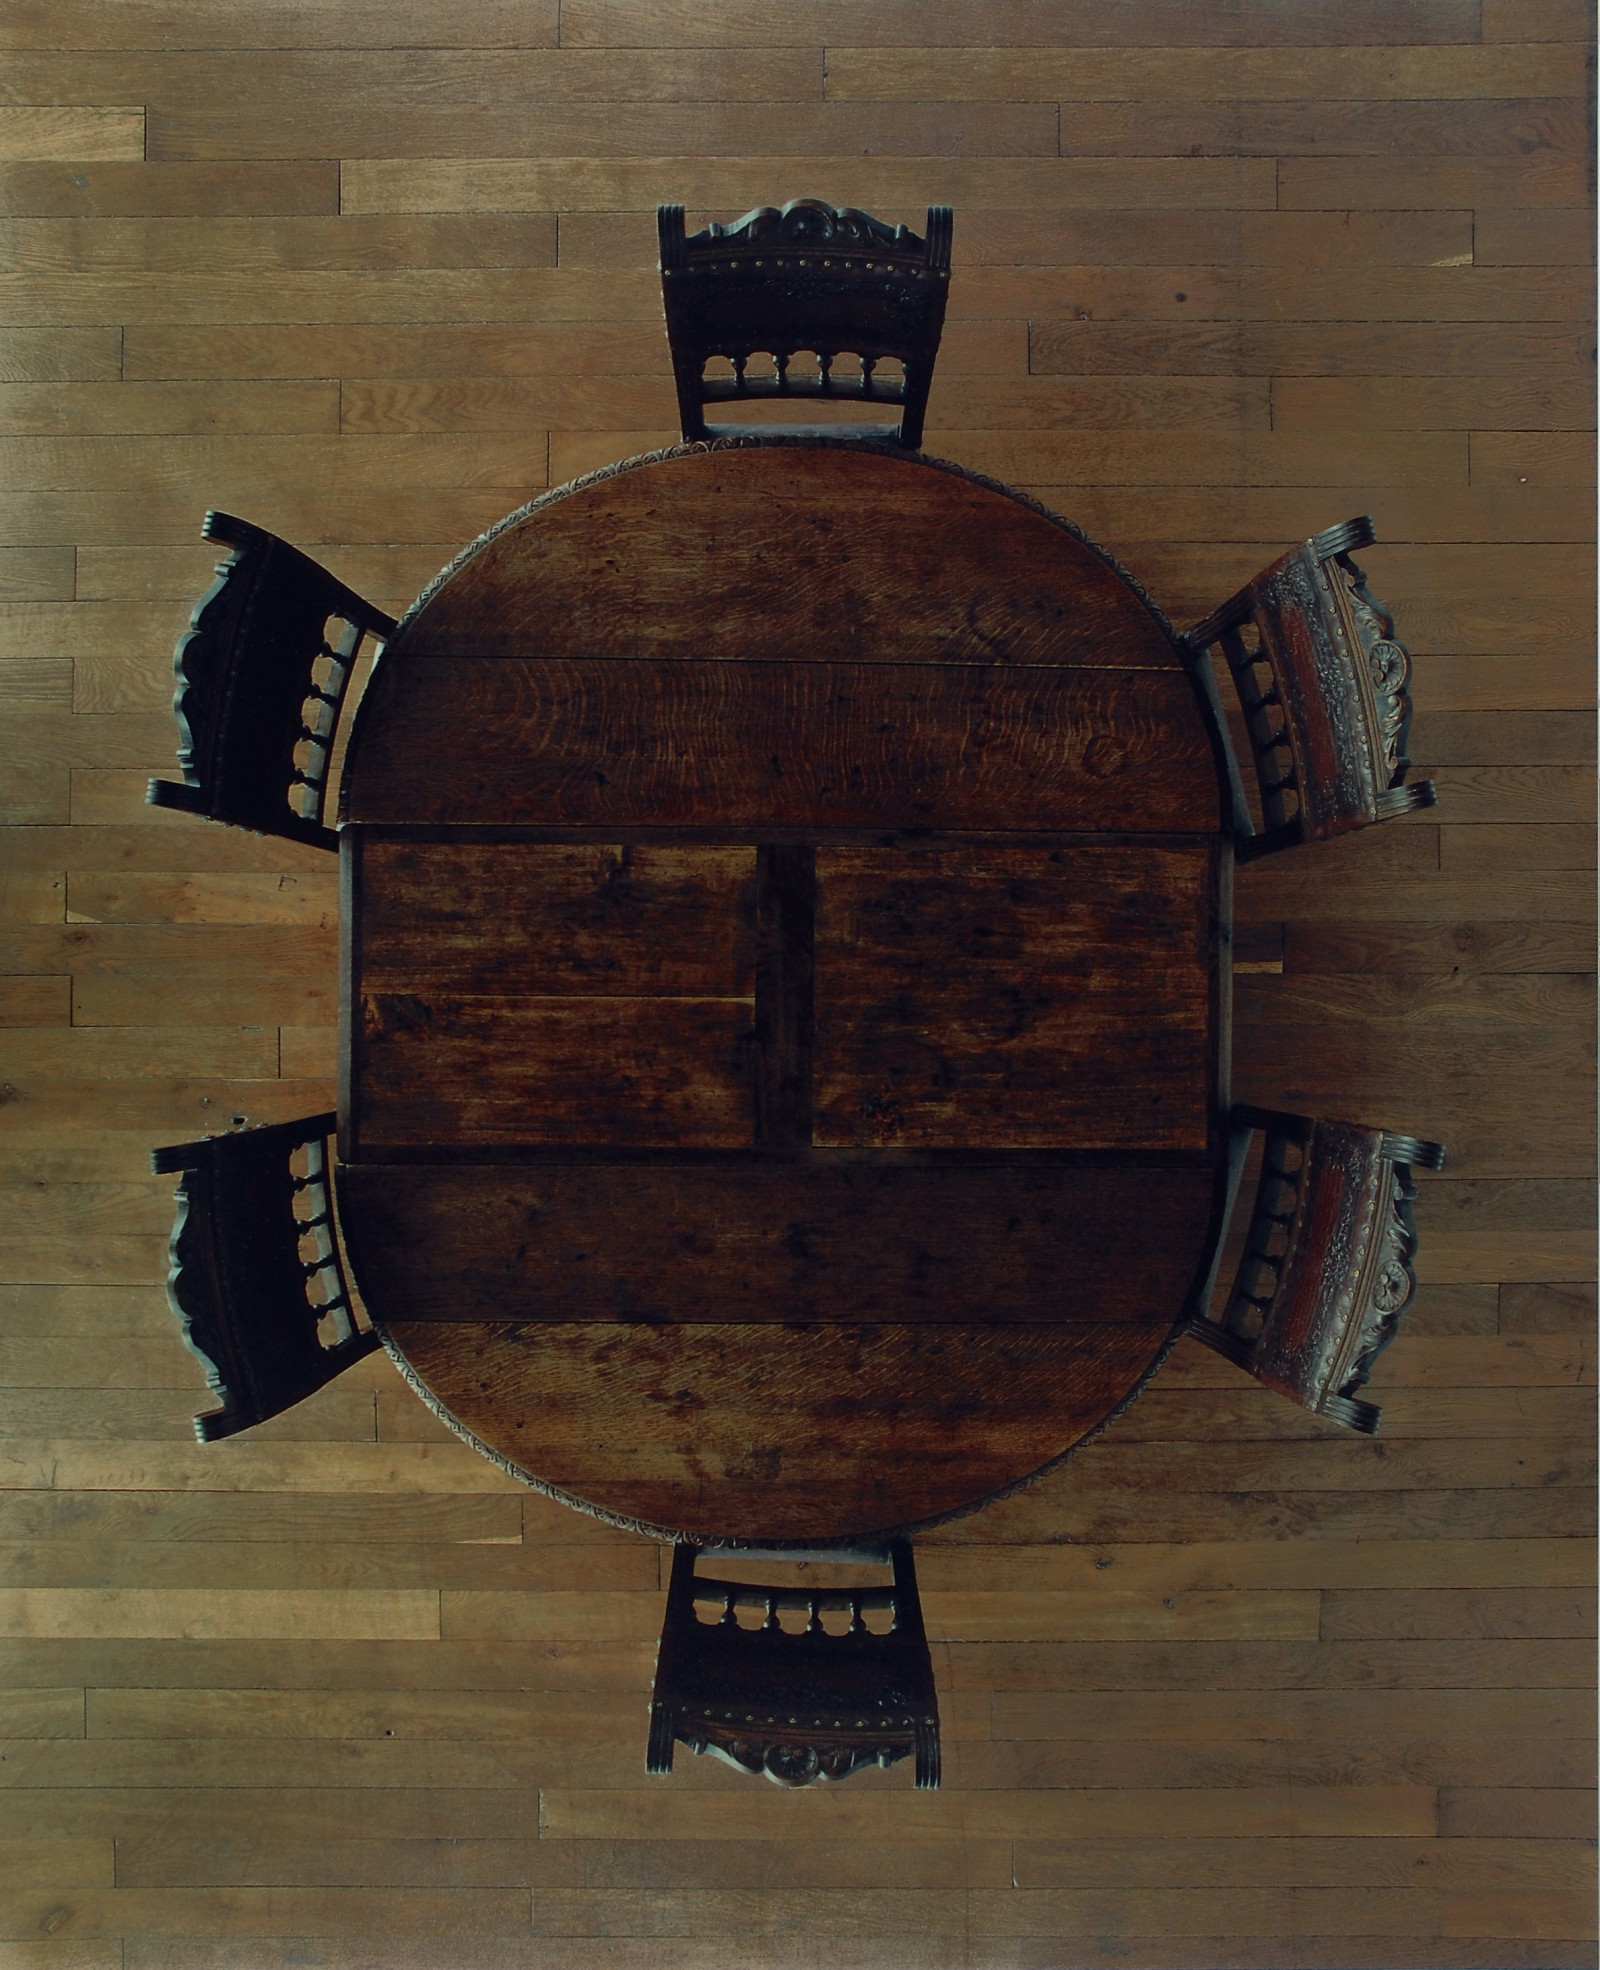 Carole Fékété, La Table, 2003